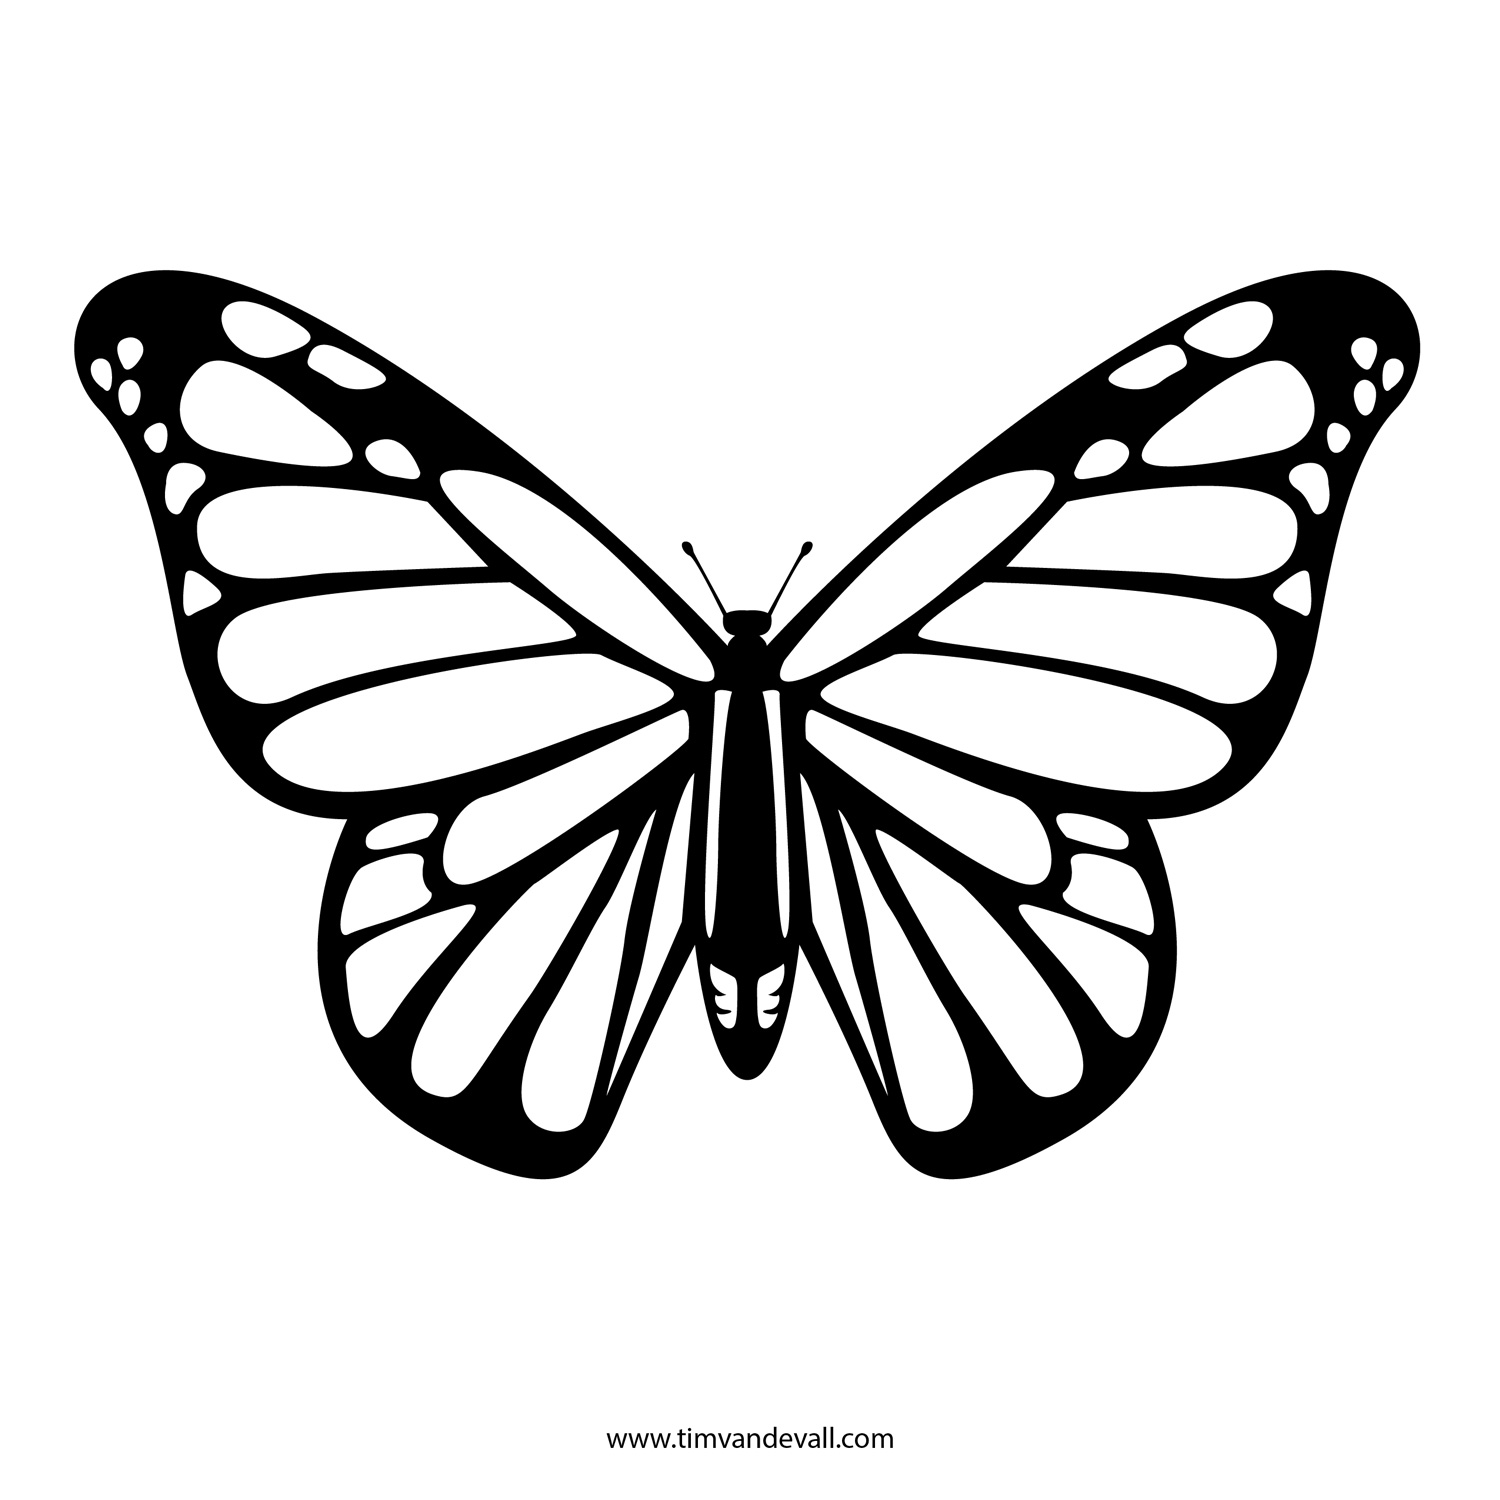 5 Images of Free Printable Butterfly Outline